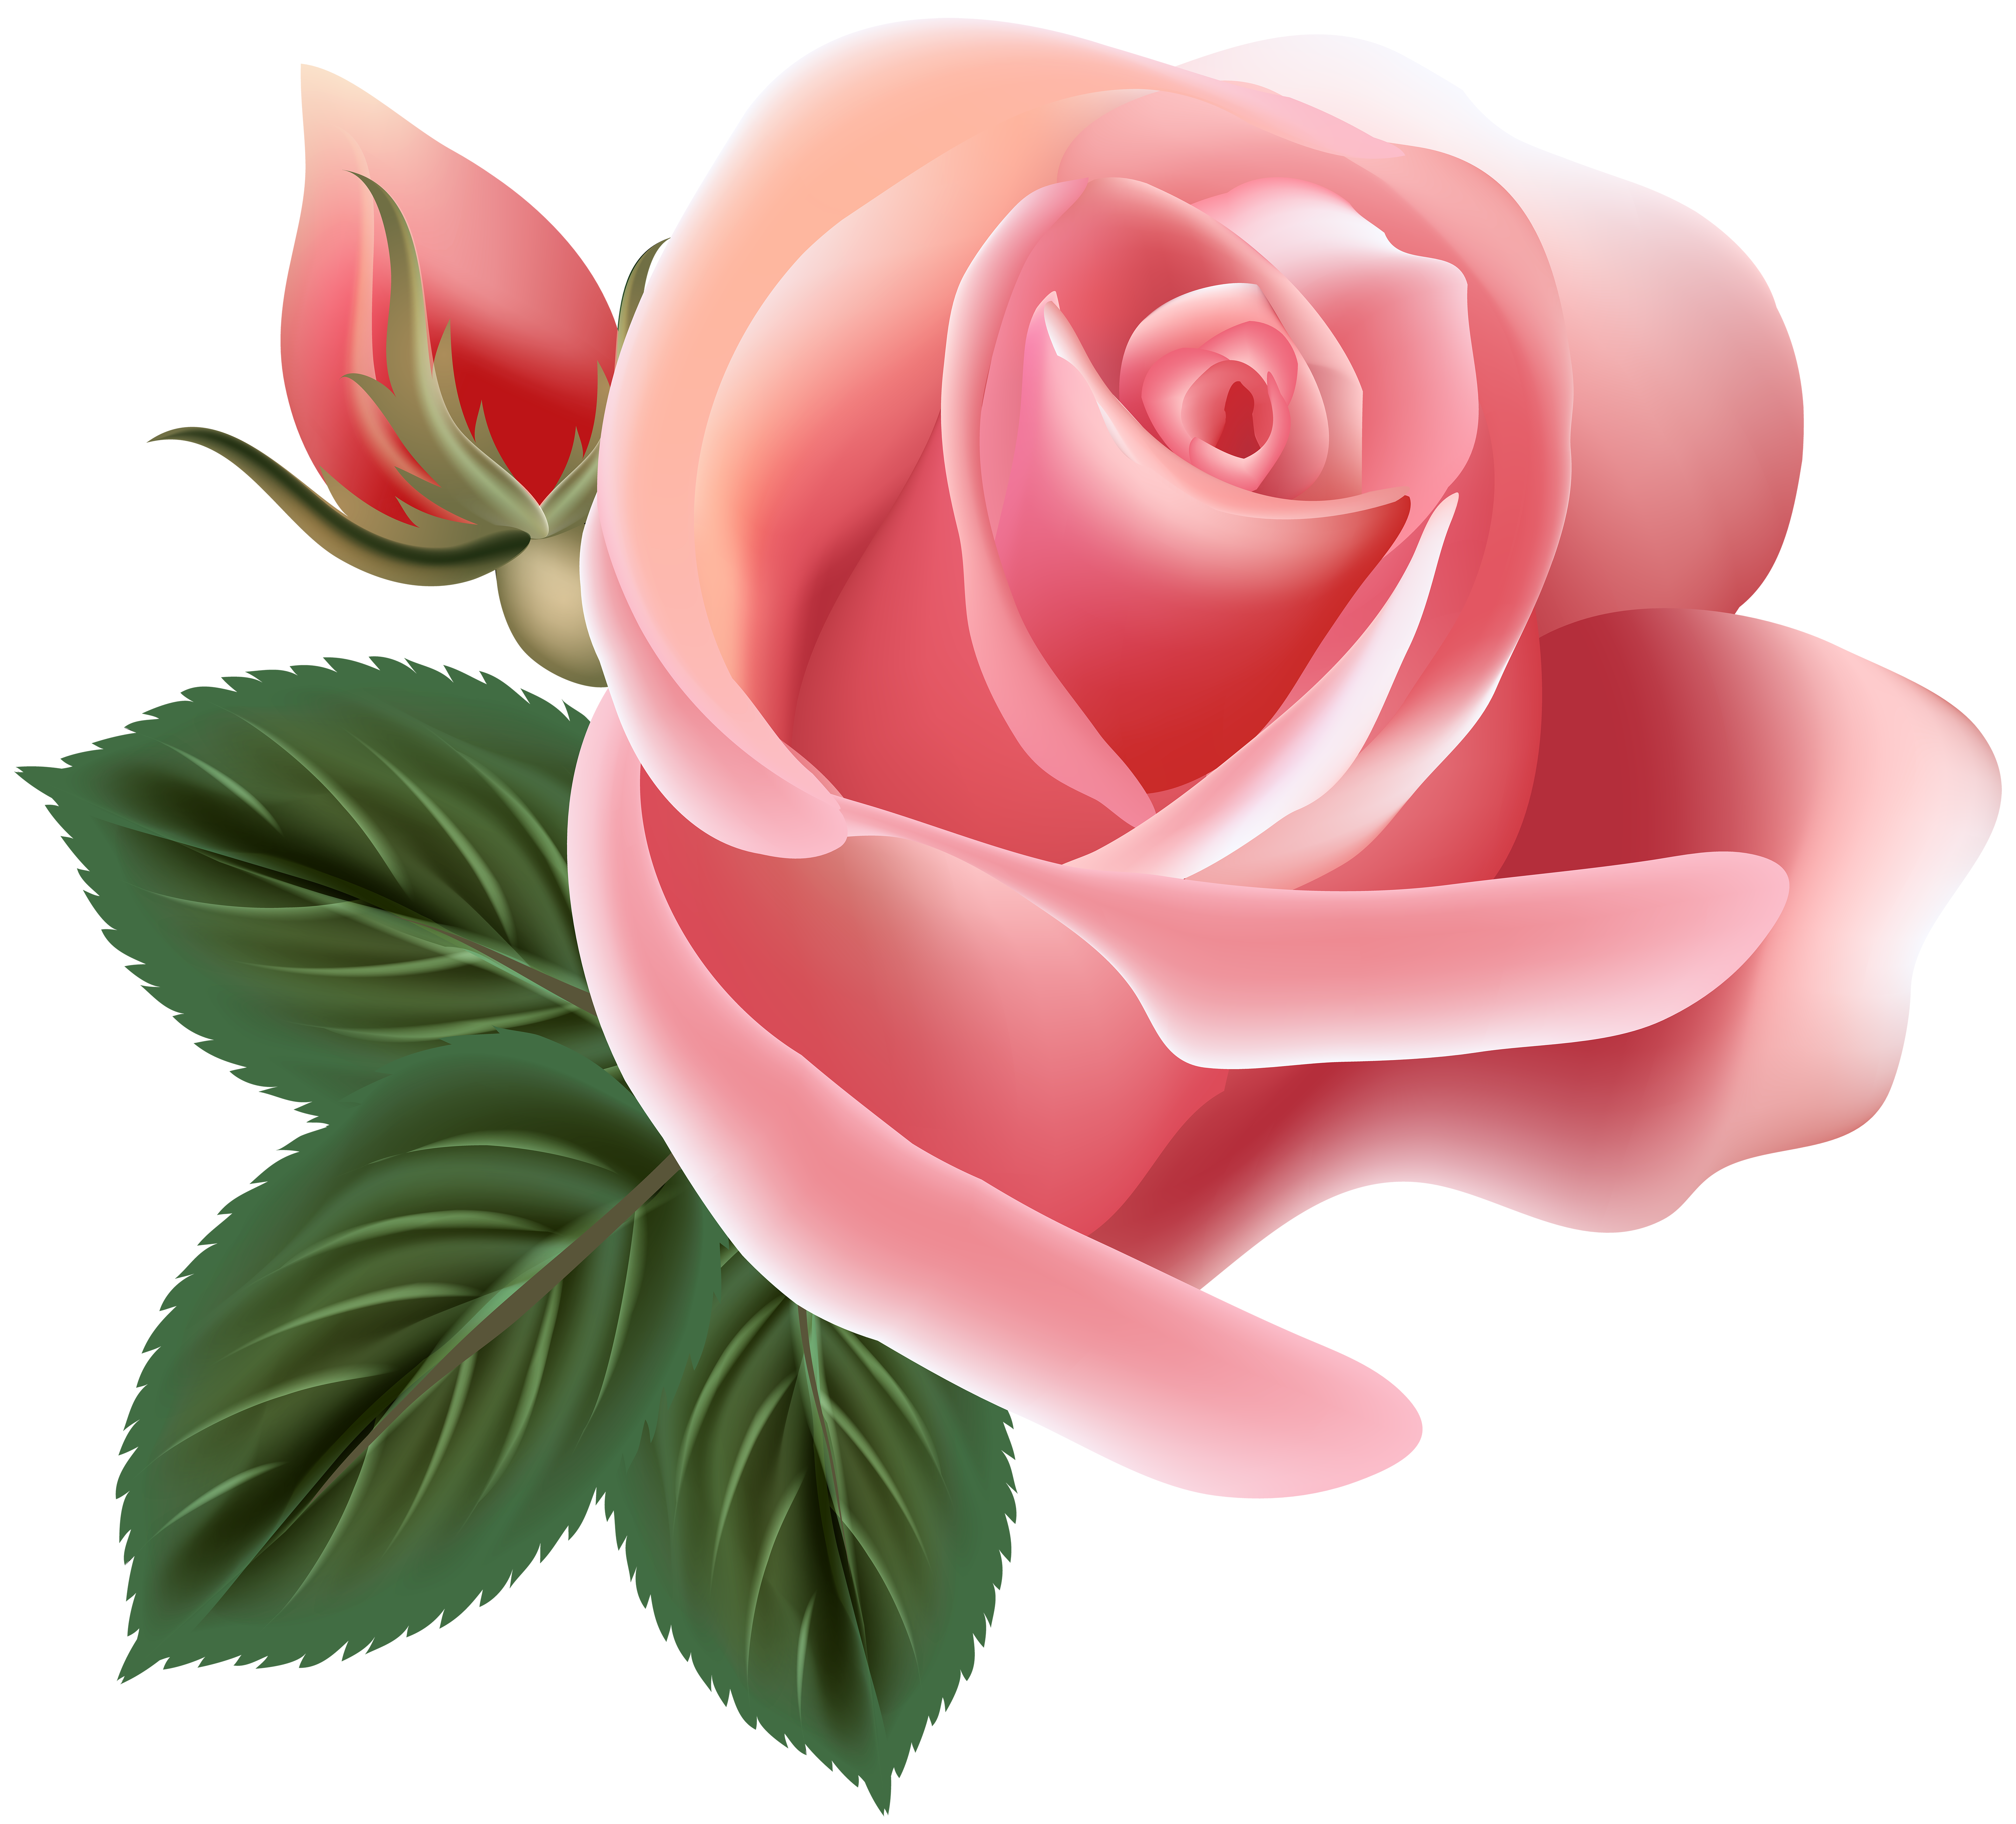 Pin by Татьяна Саенко on фотошоп | Pinterest | Clip art, Pink roses ... picture freeuse stock